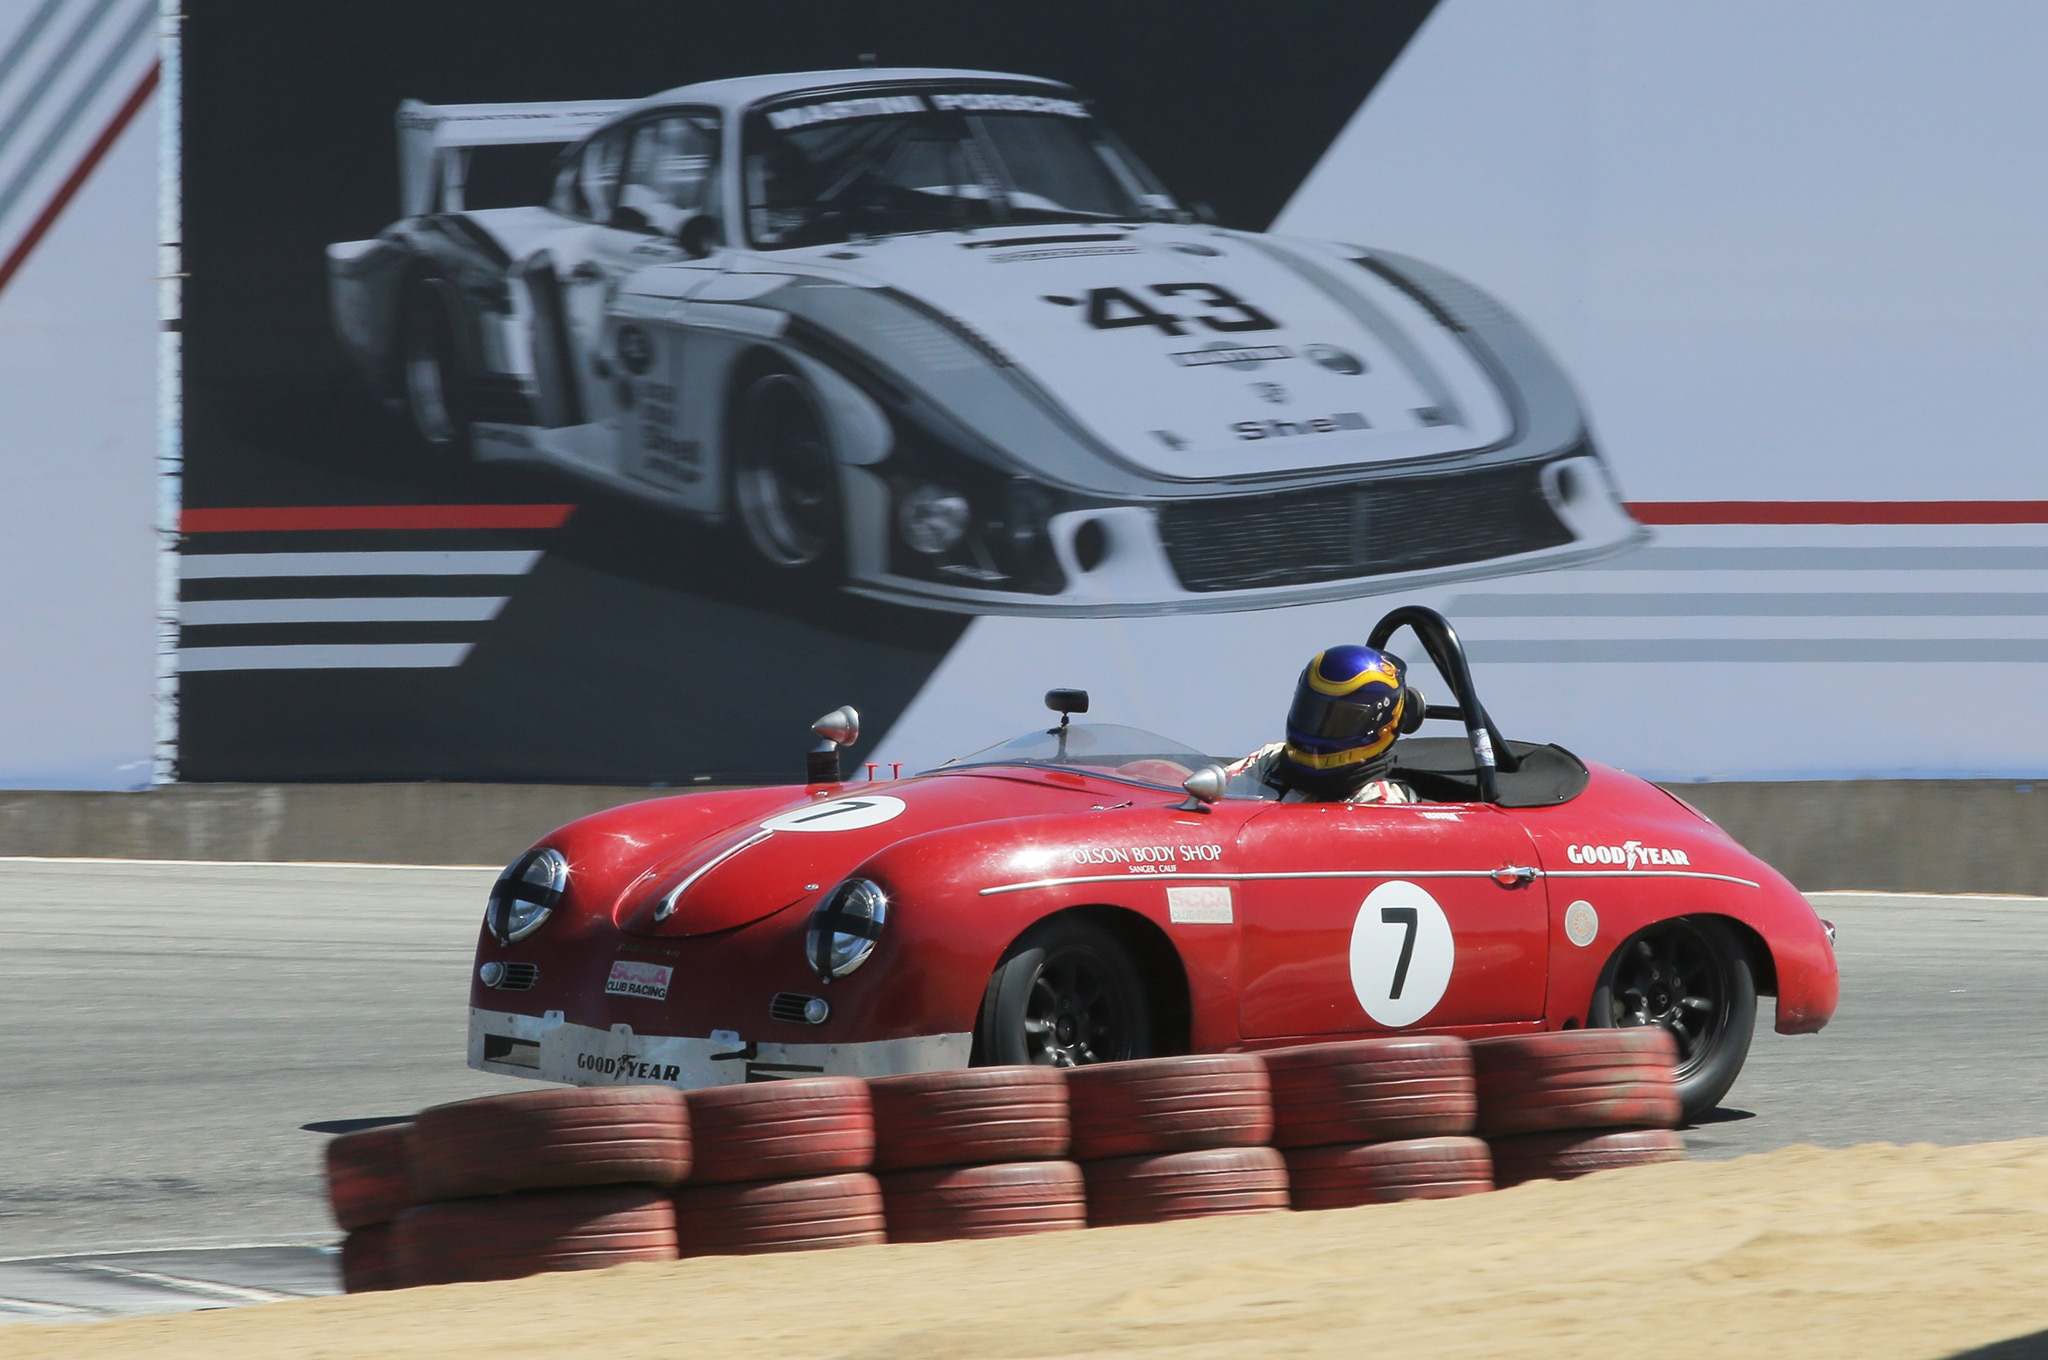 4. Two Porsche classics, a 356 Speedster on the track, the famous 935/78 Moby Dick in the background.